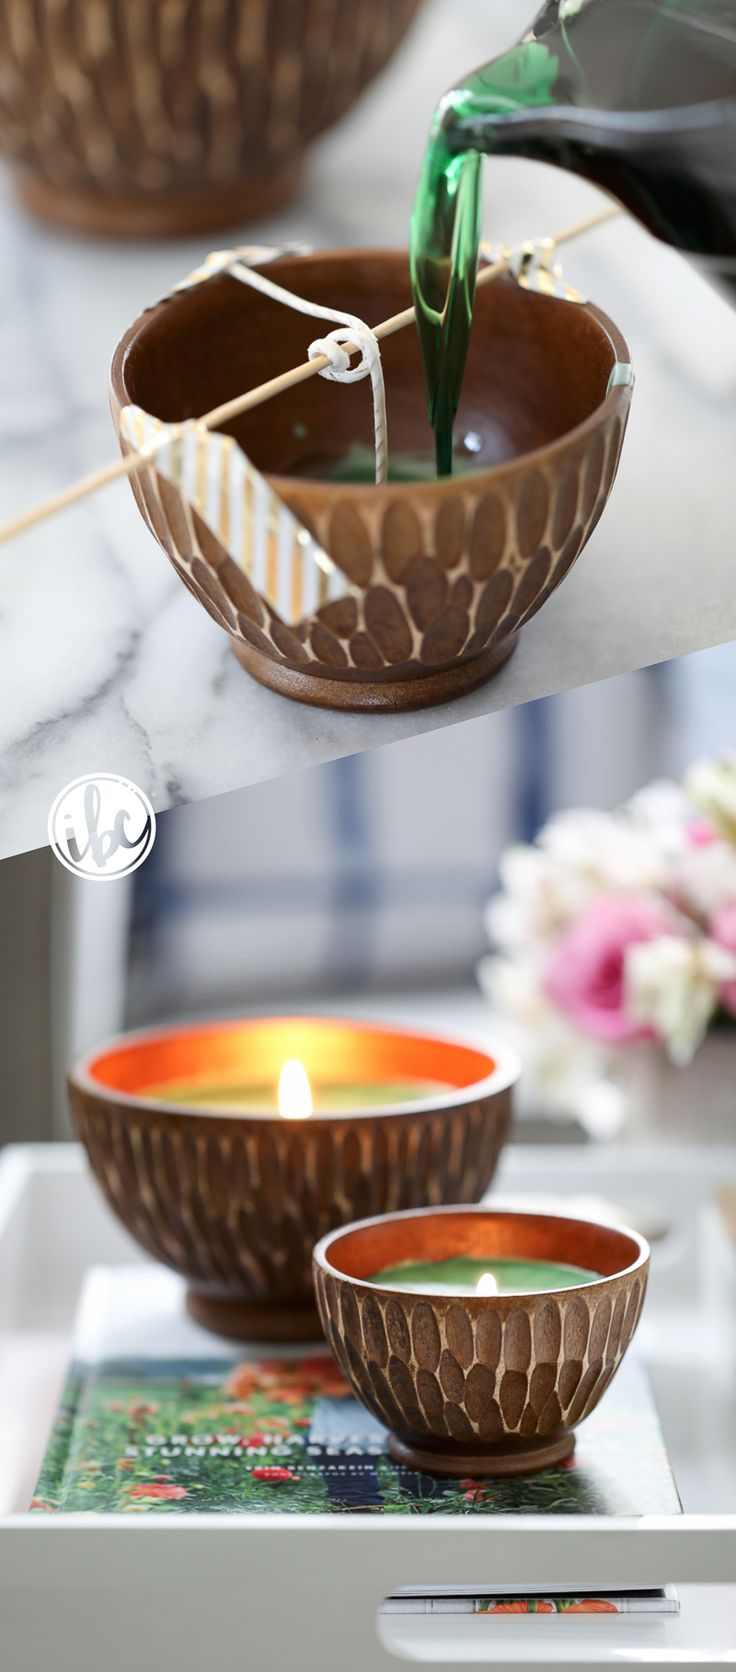 best 25 oil candles ideas on pinterest essential oil candles diy candle oil and diy. Black Bedroom Furniture Sets. Home Design Ideas